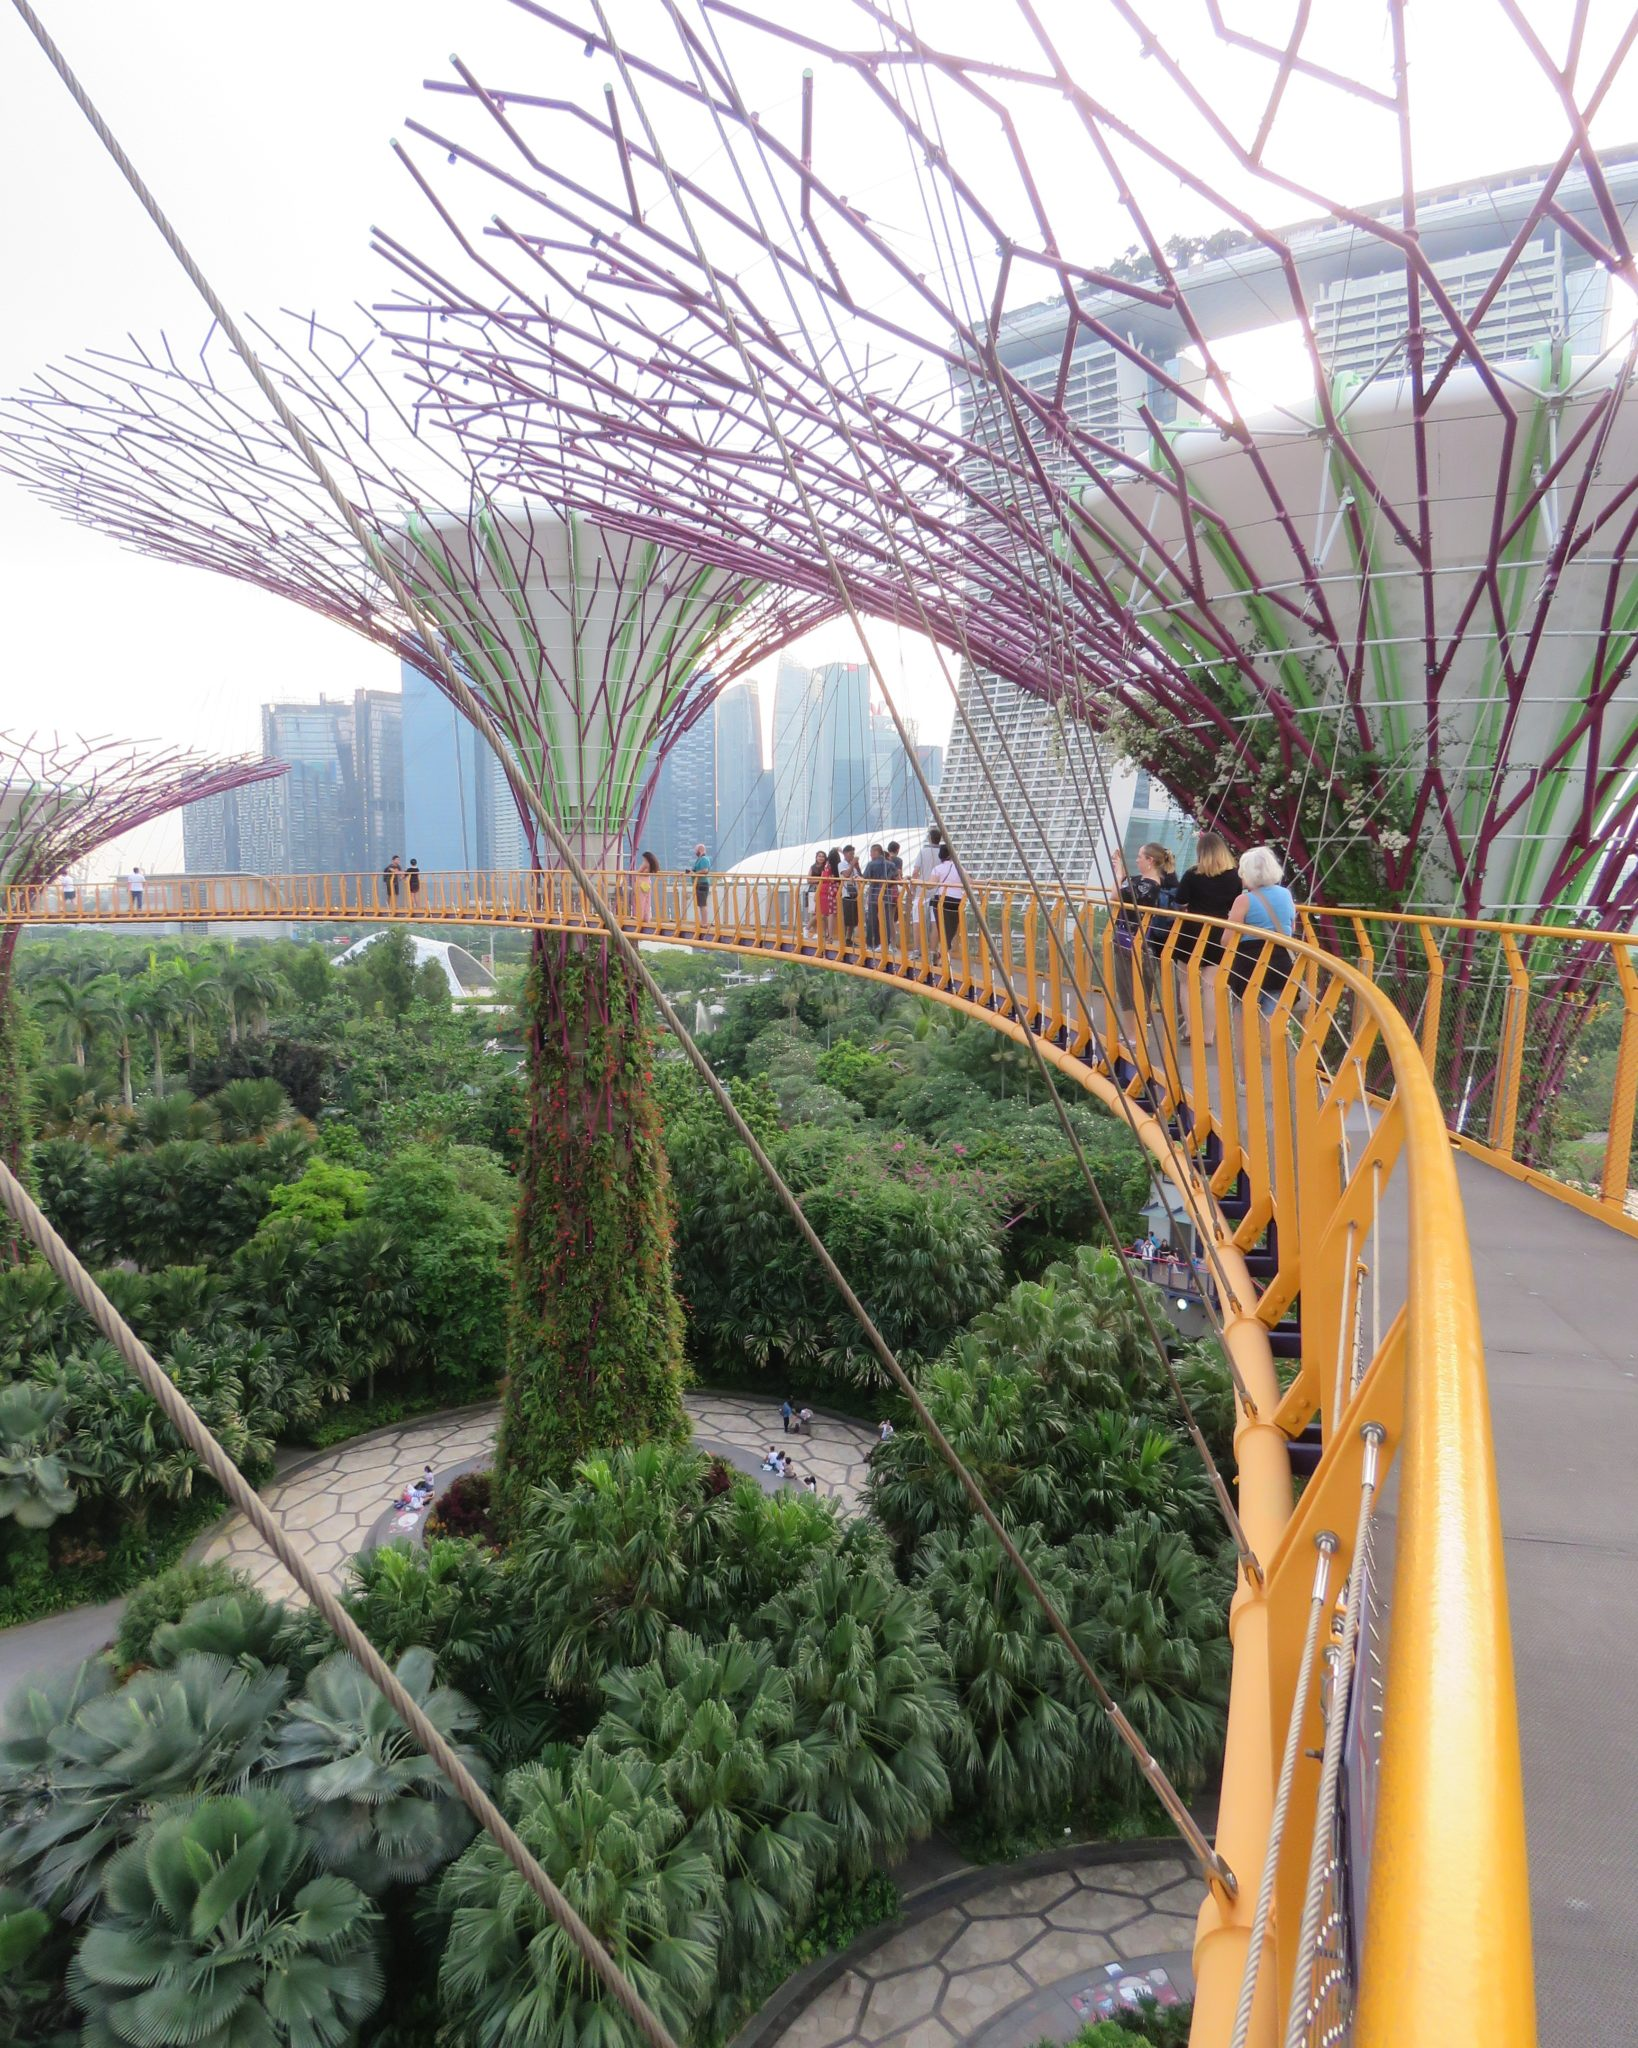 Garden By The Bay Fee gardensthe bay, singapore - complete guide & review - seven